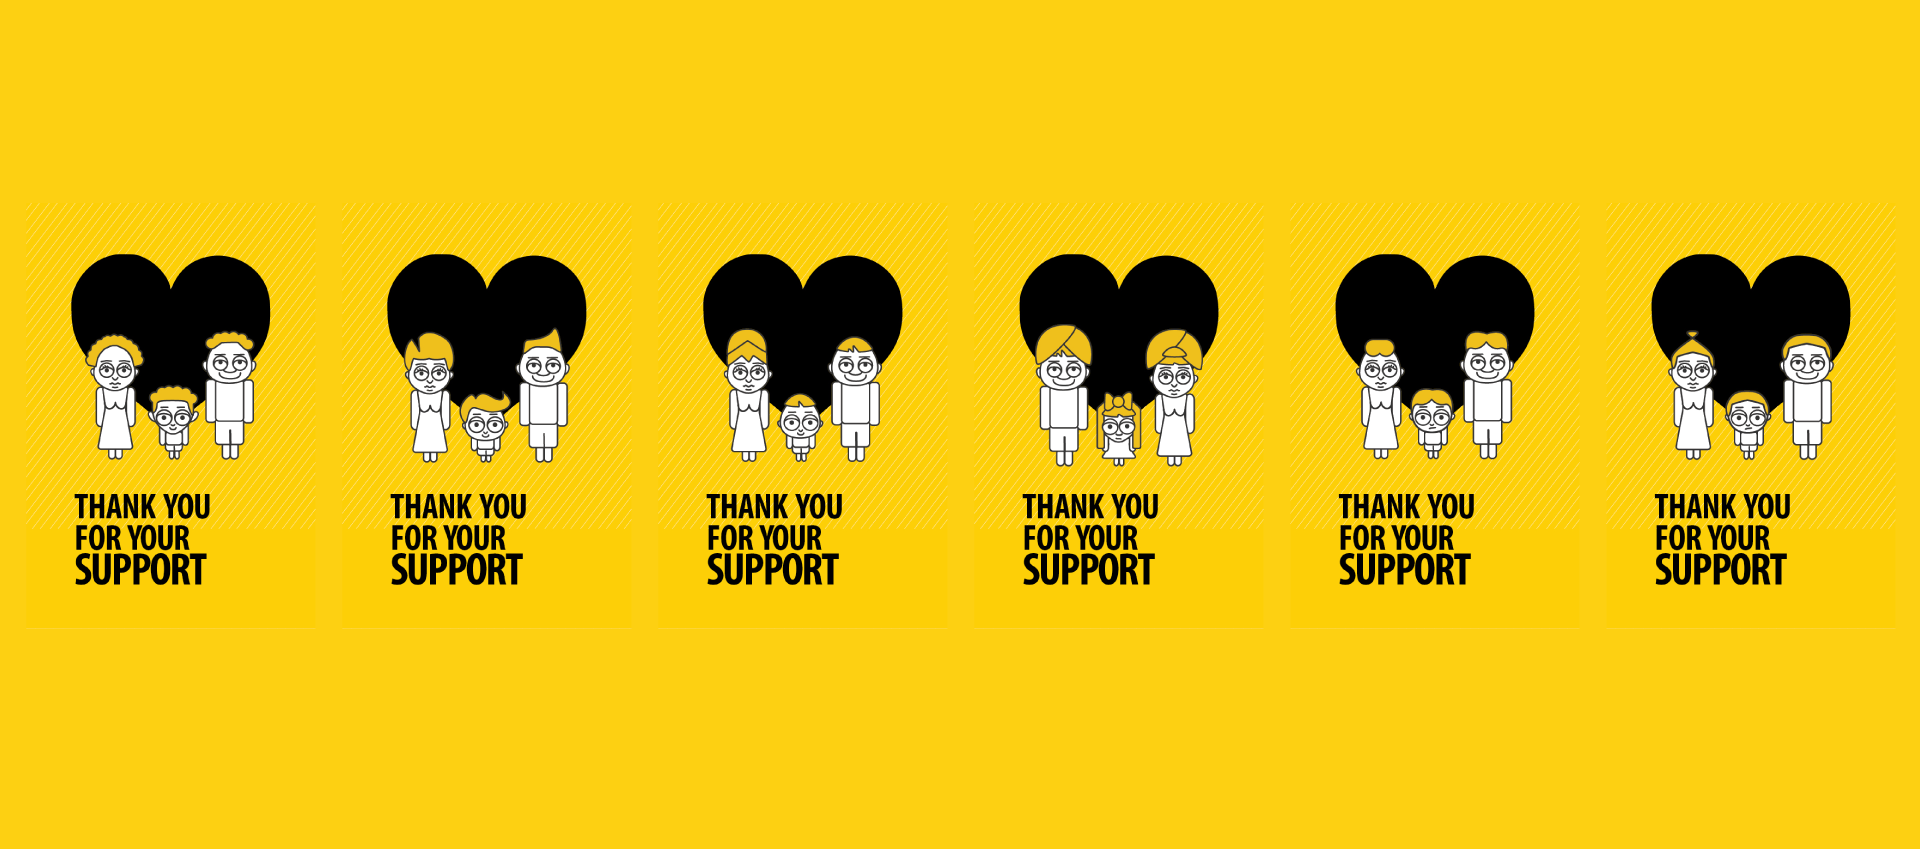 Parental-Child-Slider-02-Graphic-Design-Nadav-Mizrahi-Nadmiz